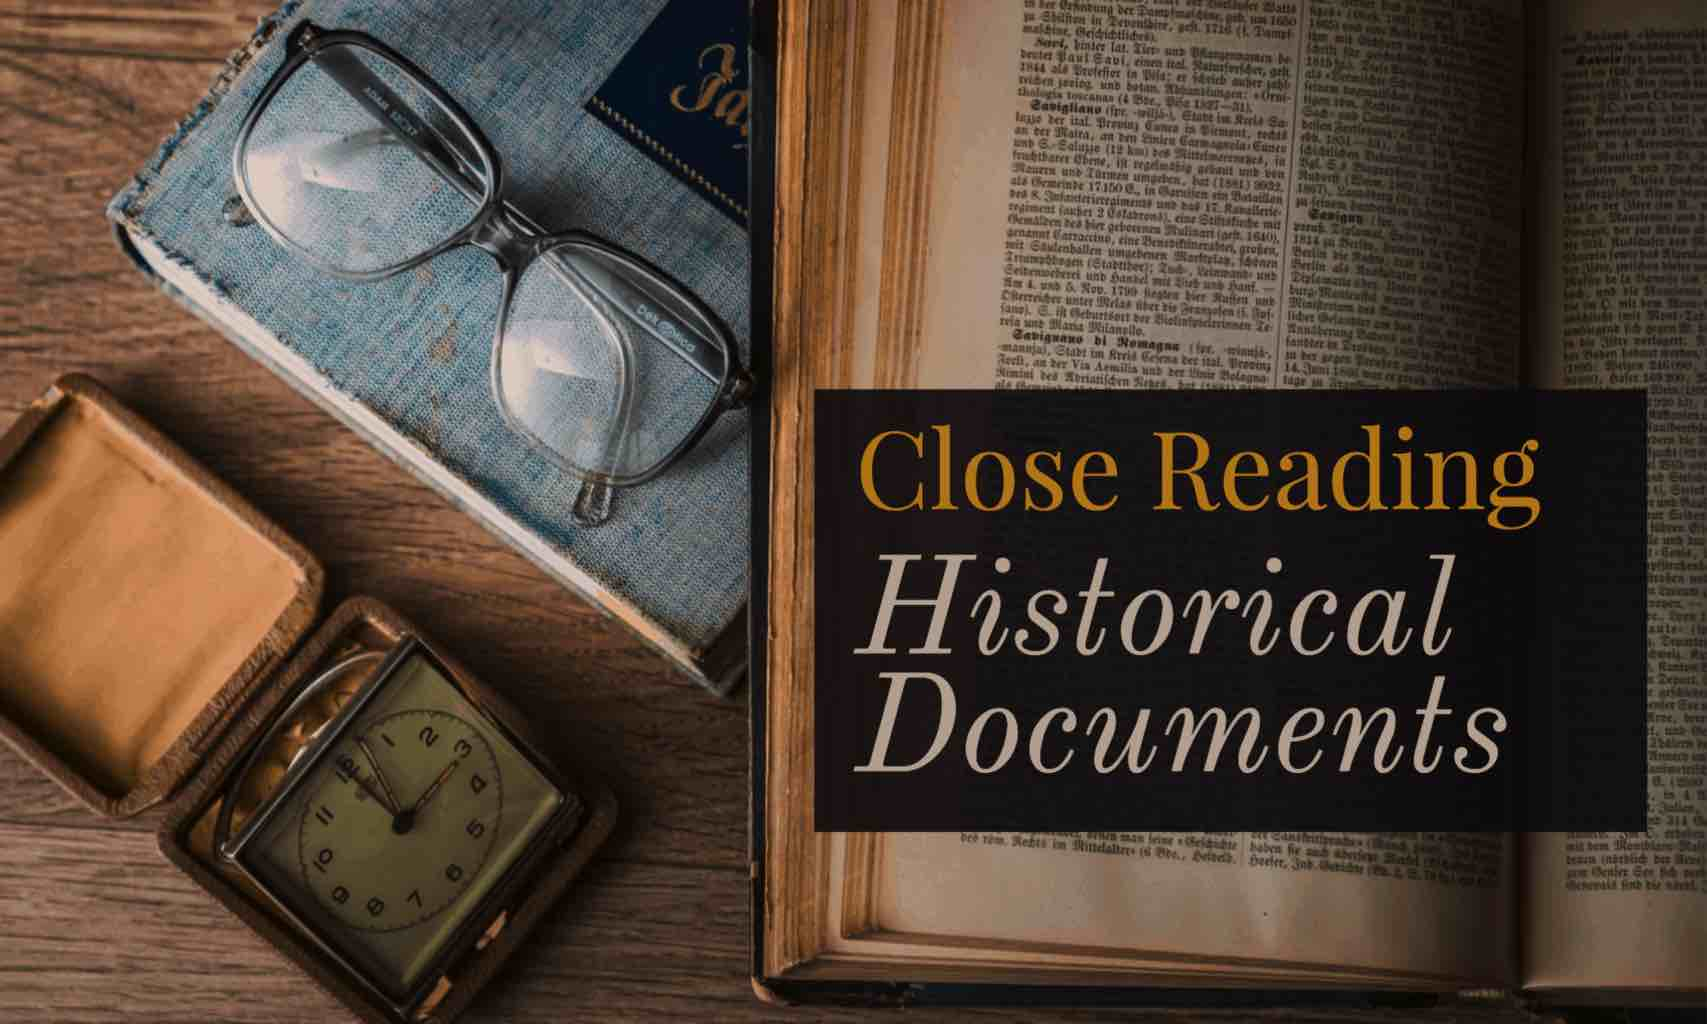 Close Reading Historical Documents